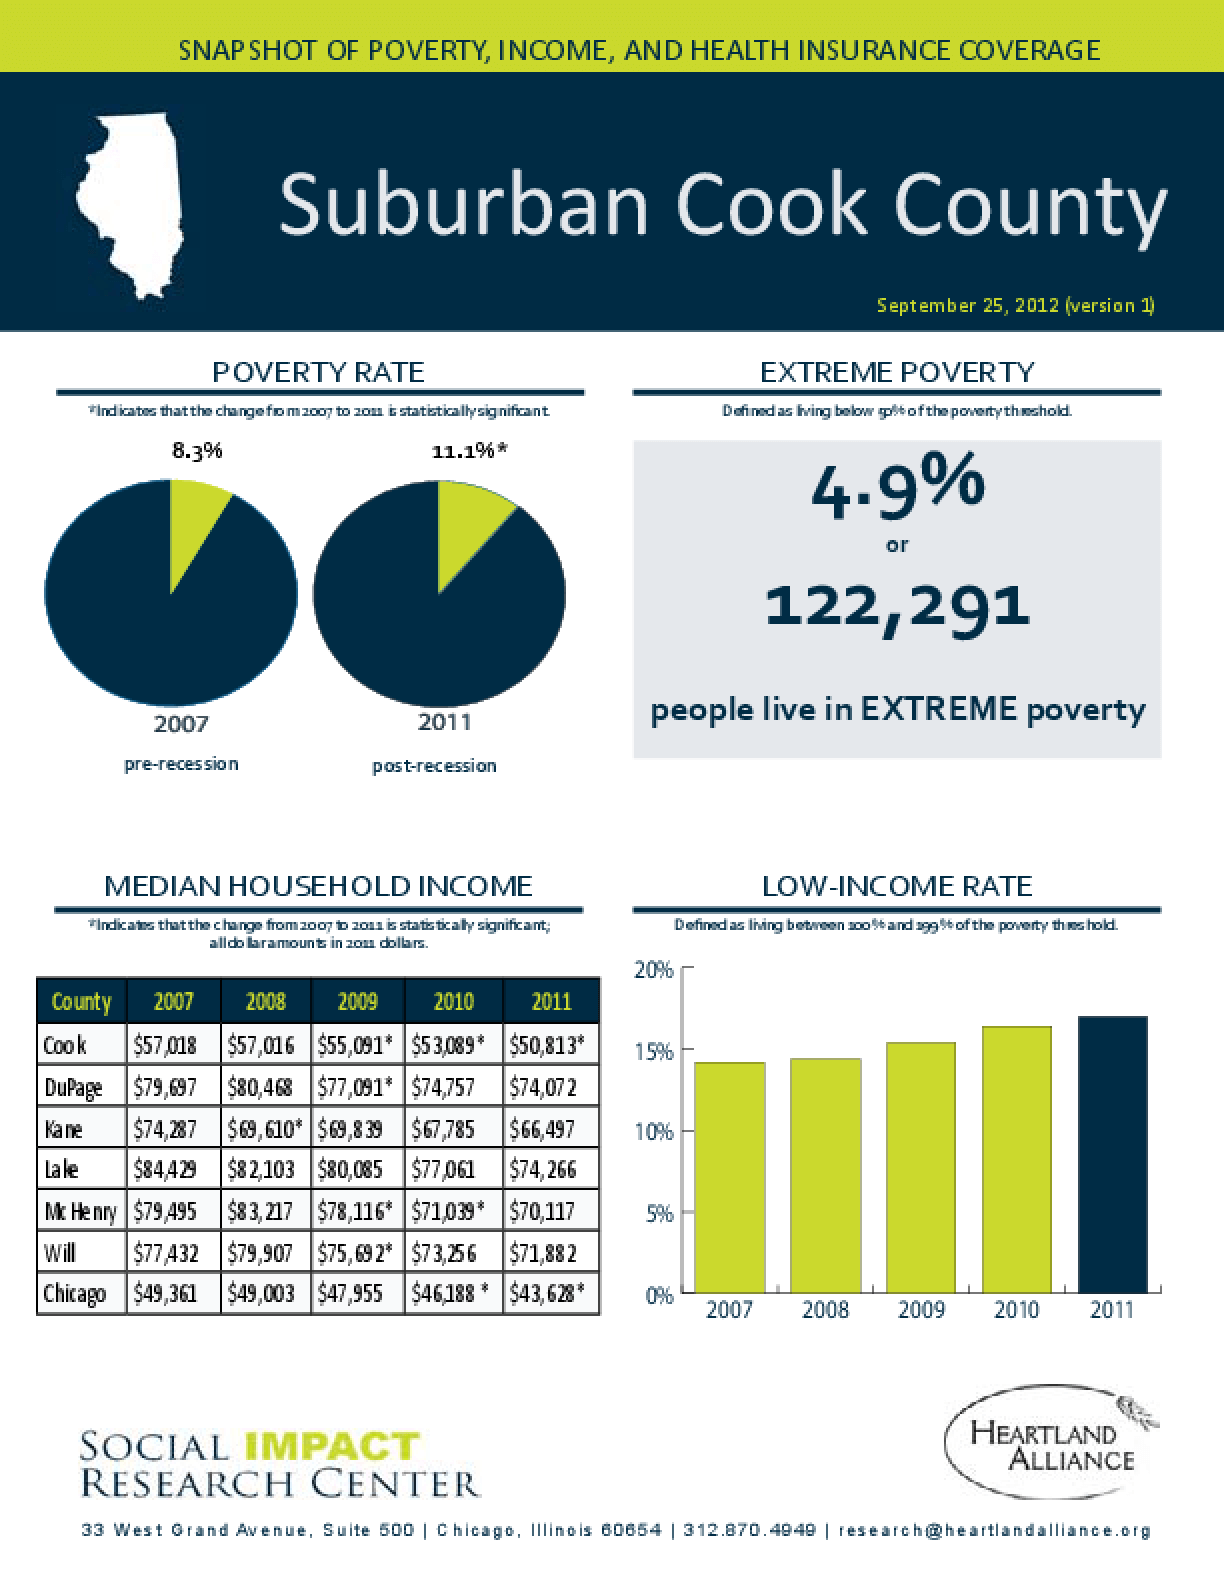 Suburban Cook County: Snapshot of Poverty, Income, and Health Insurance Coverage - 2011